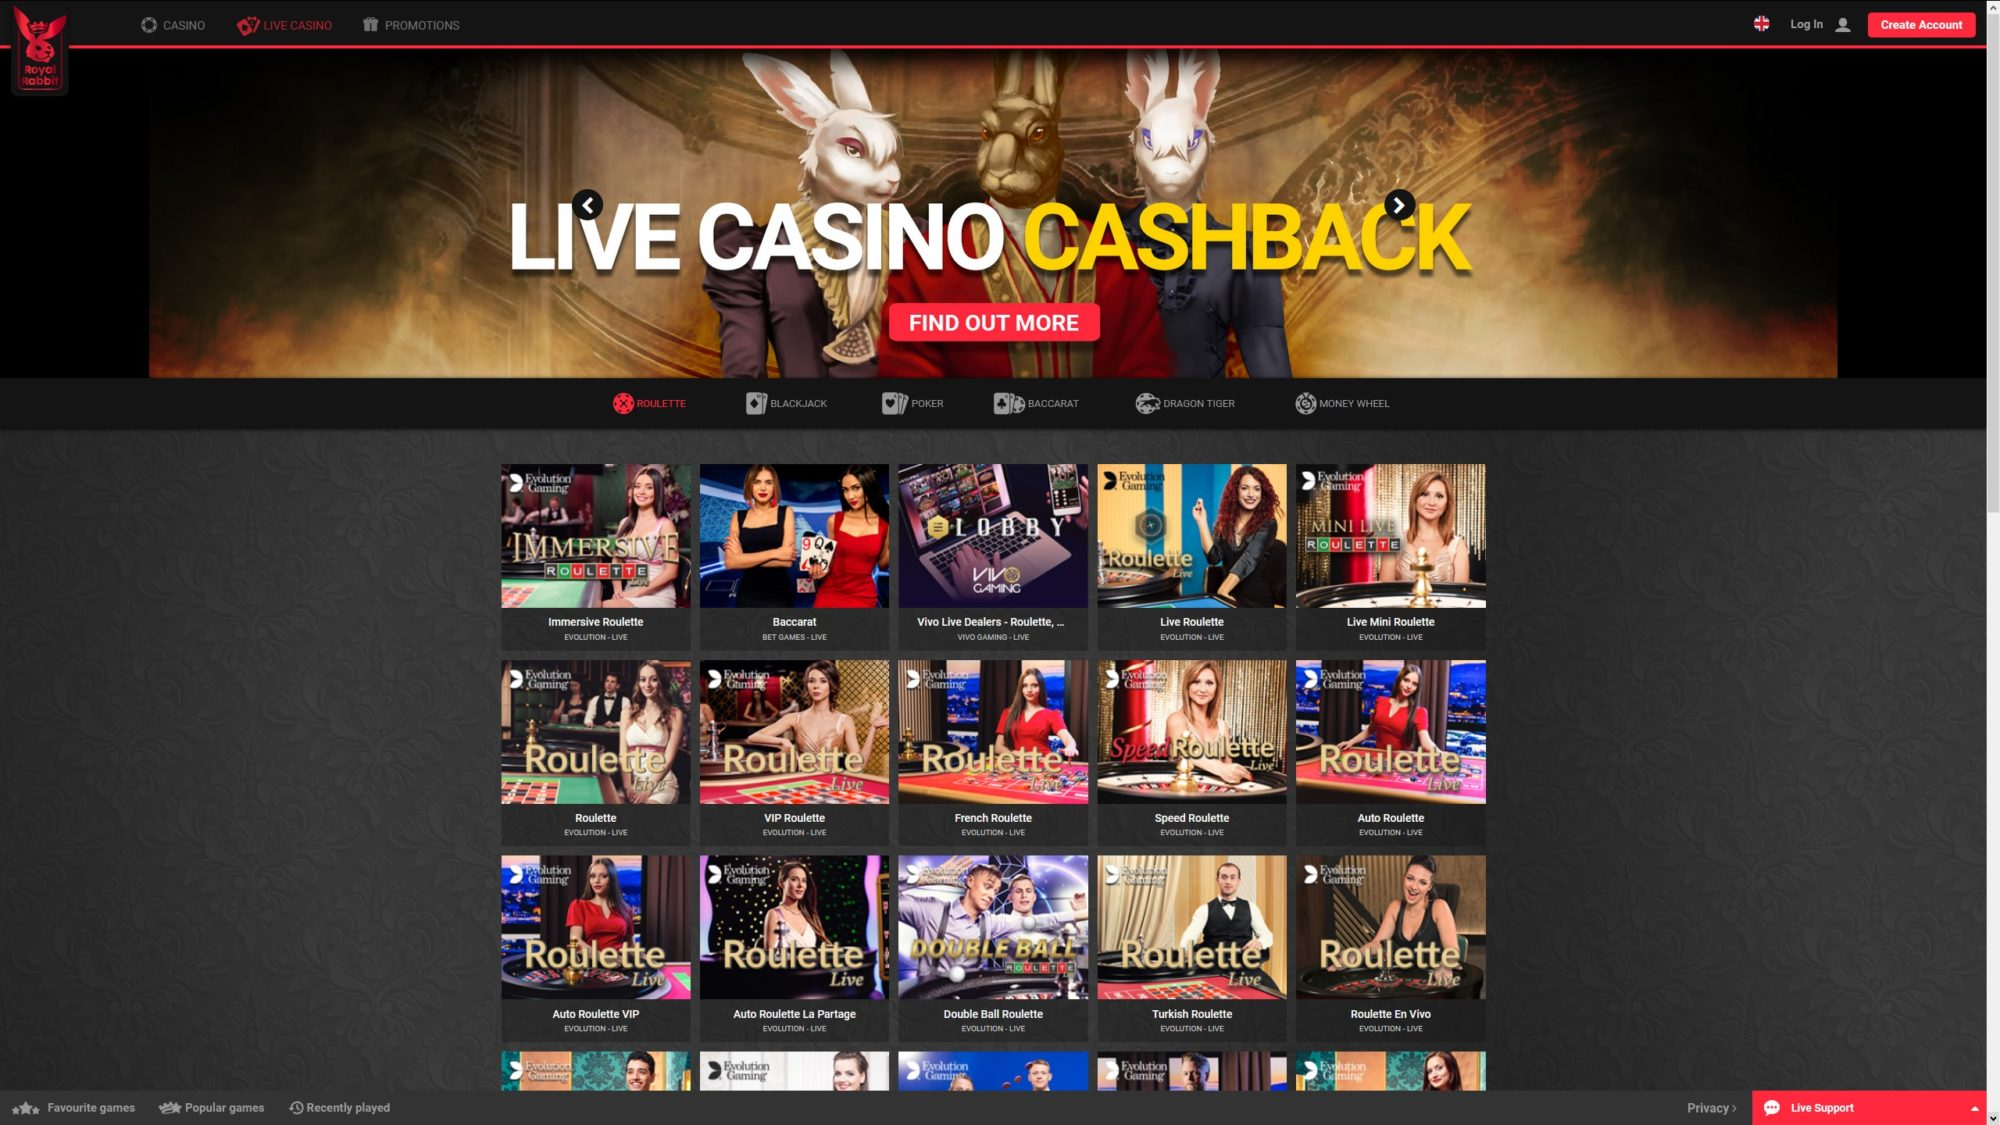 Royal Rabbit Casino Offers Live Casino